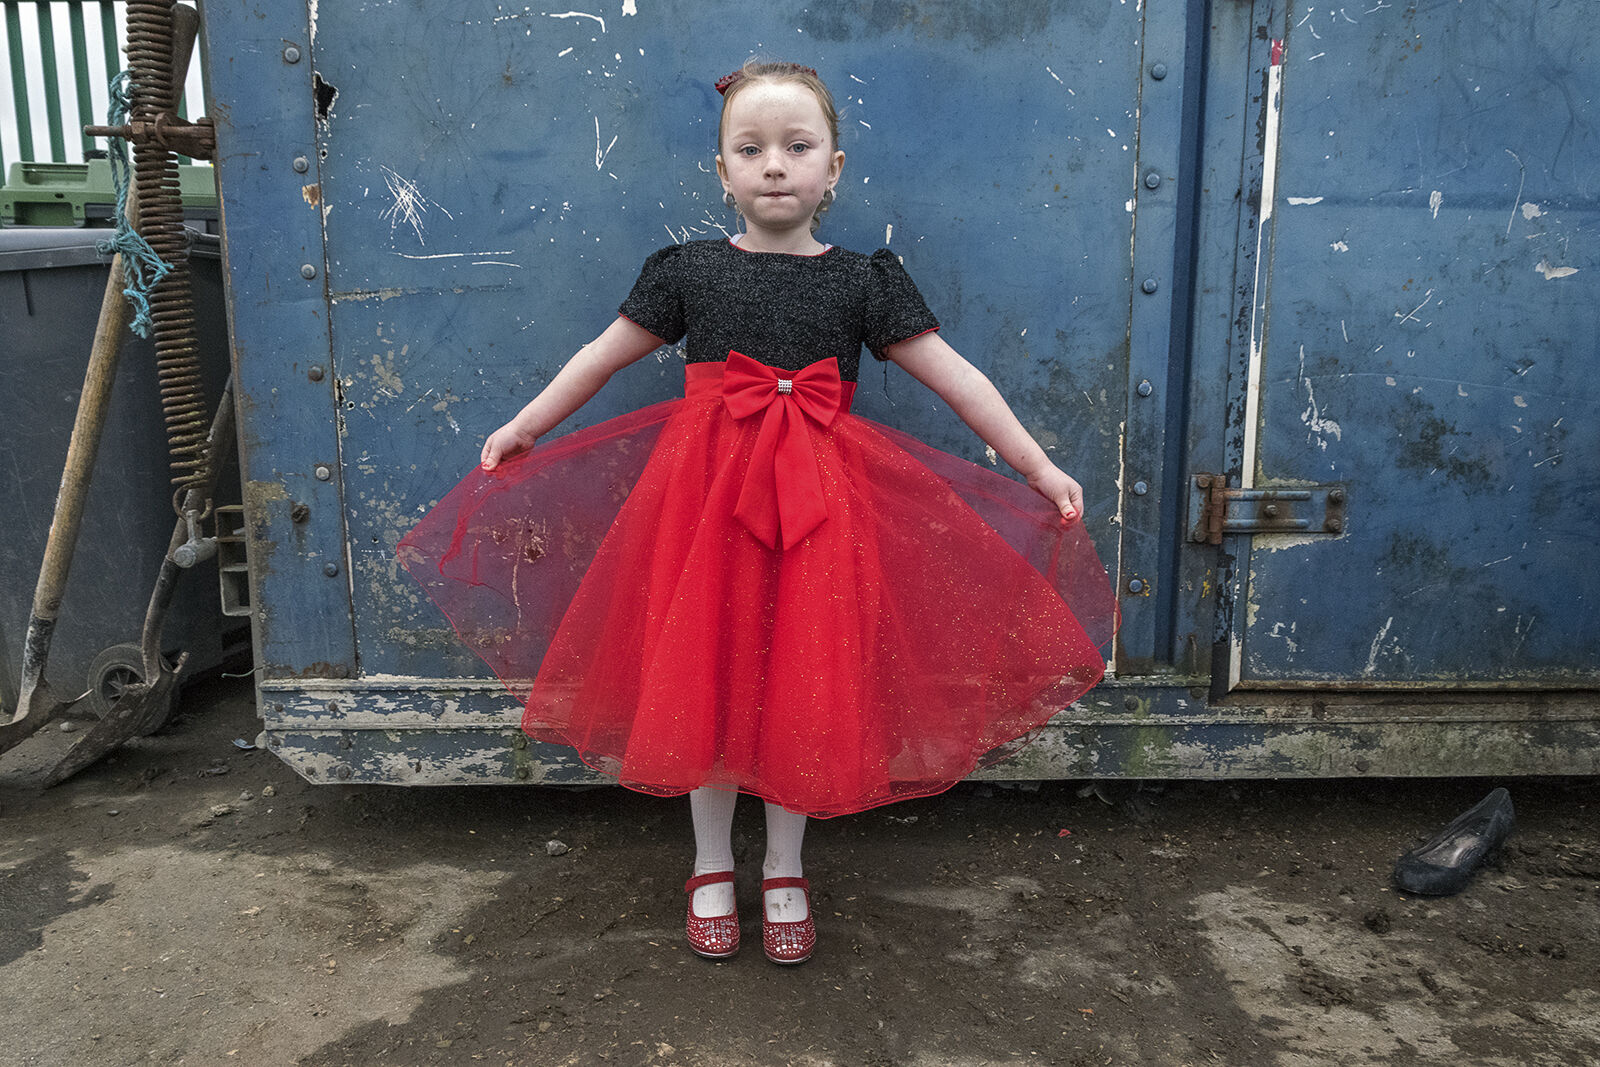 Alesha's Red Dress on New Year's Day, roadside campsite, Tipperary, Ireland 2019